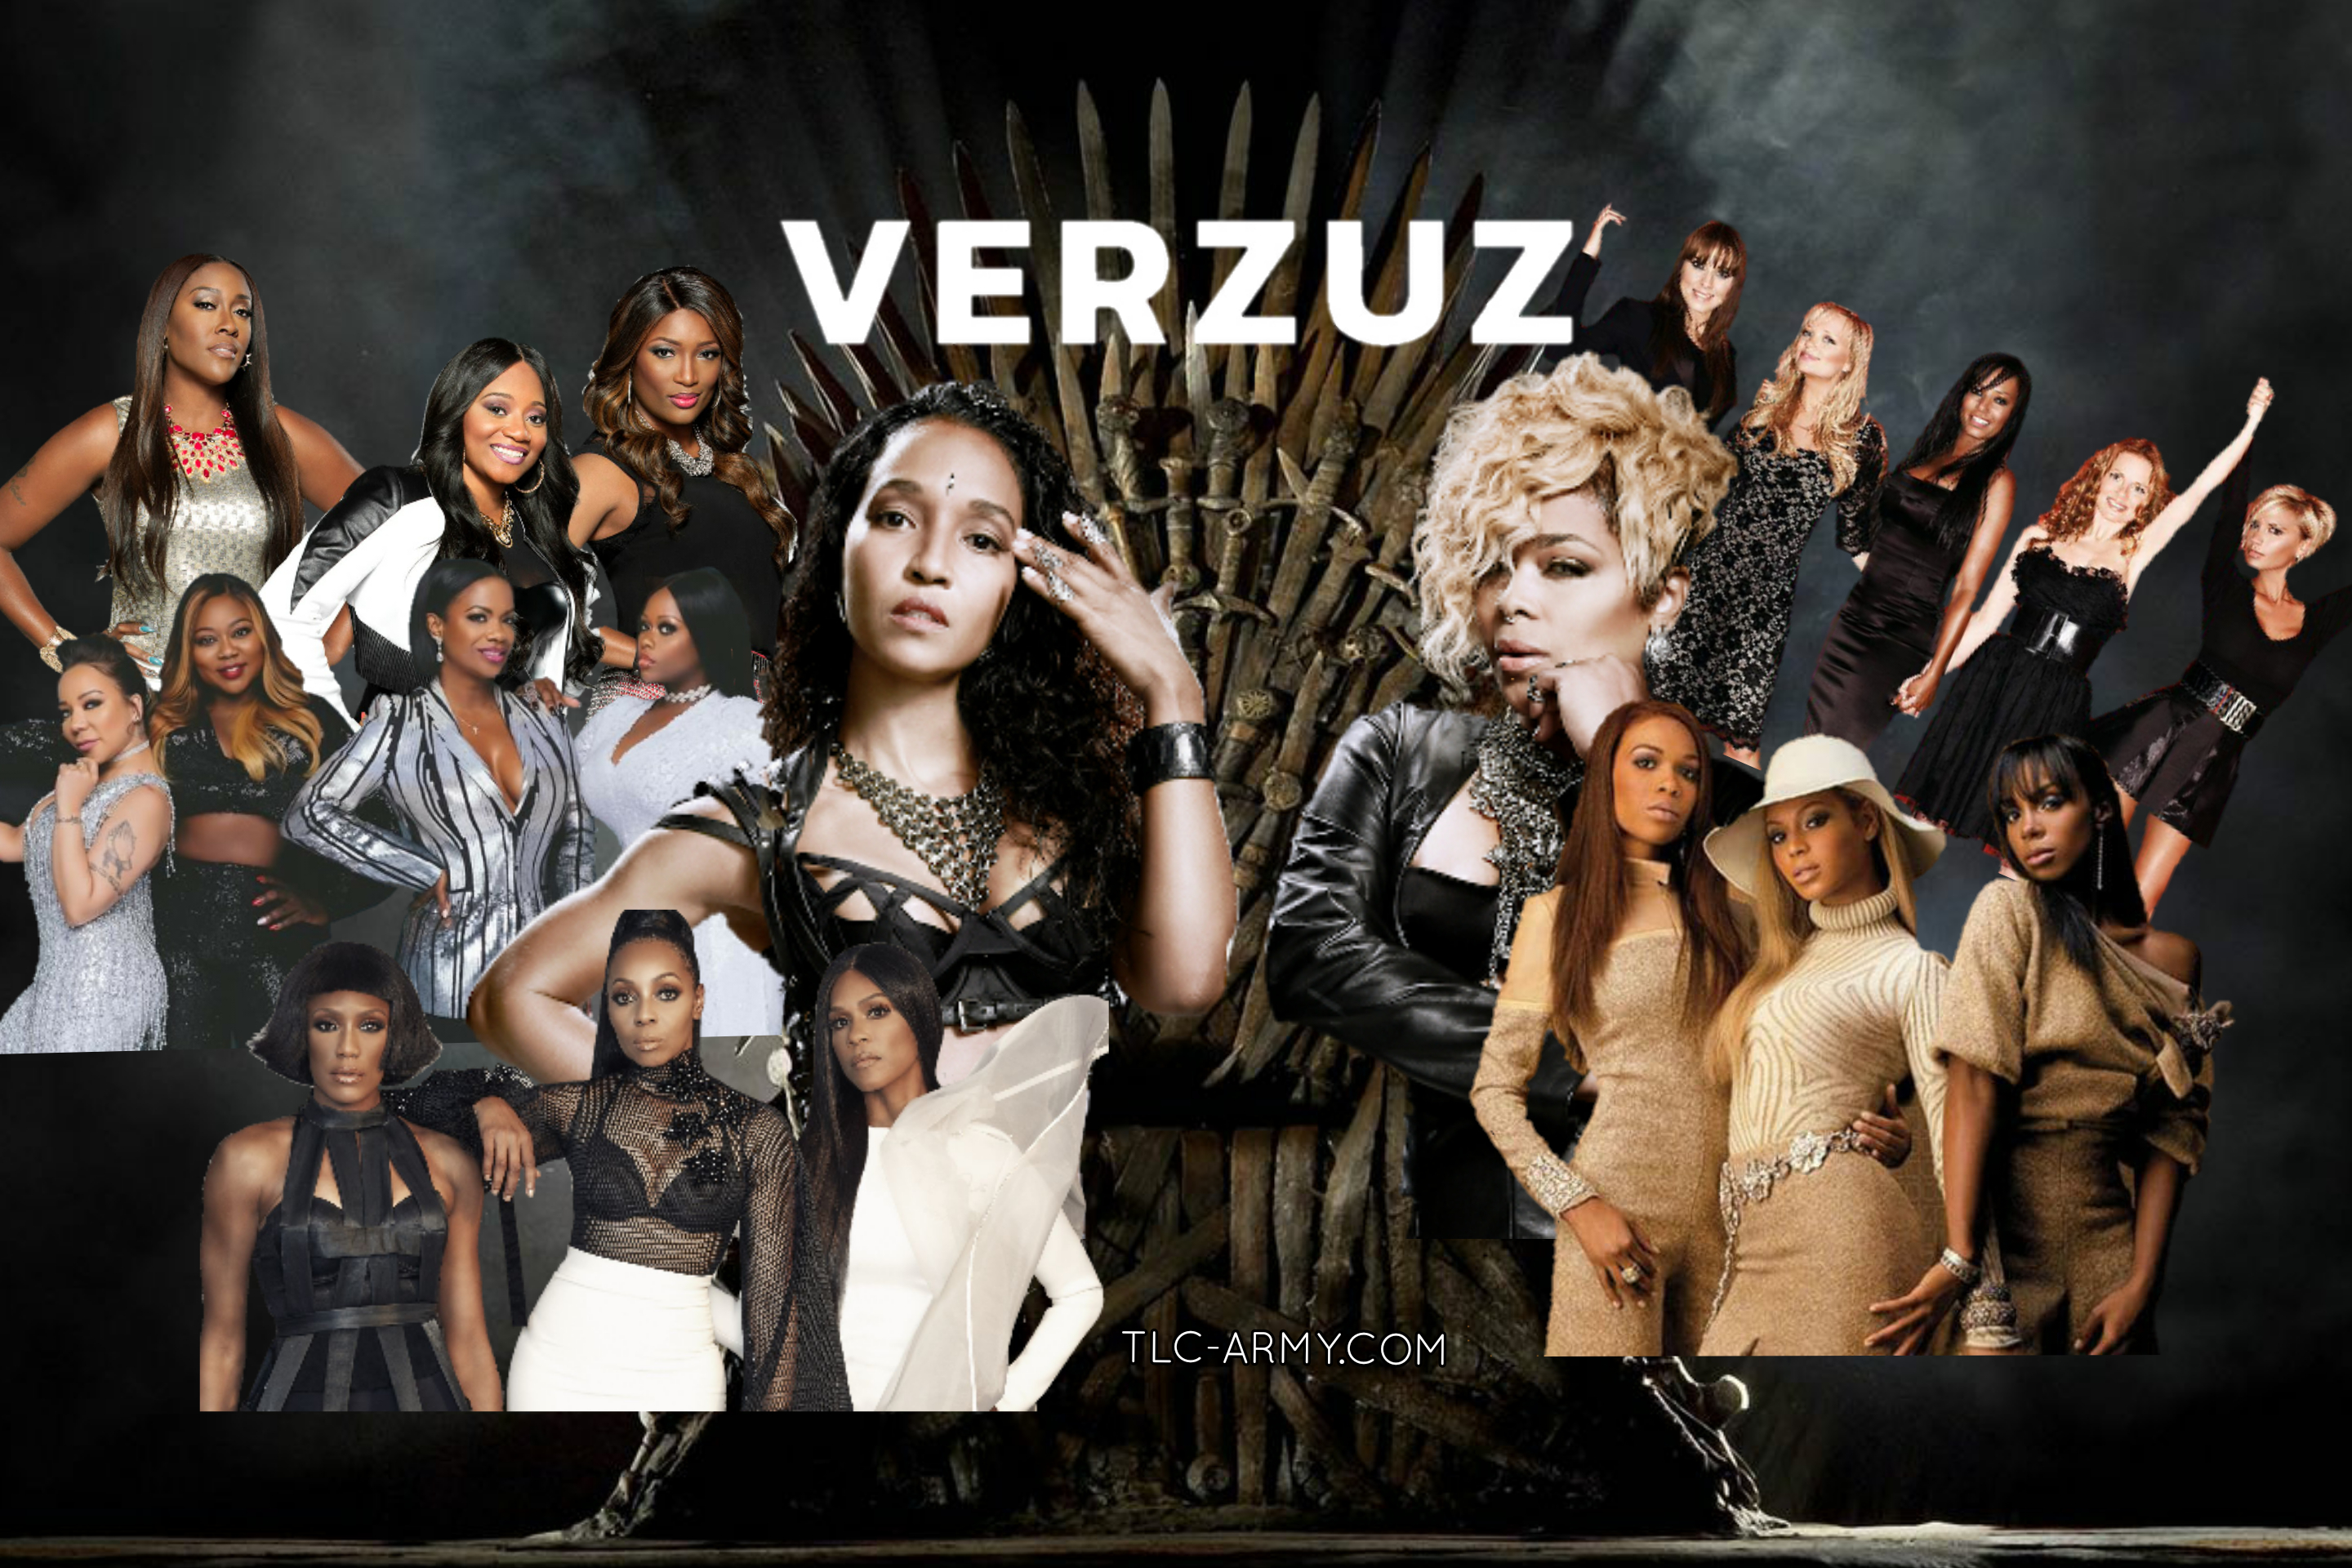 VOTE: Which Group Would Make The Best Verzuz Battle With TLC?